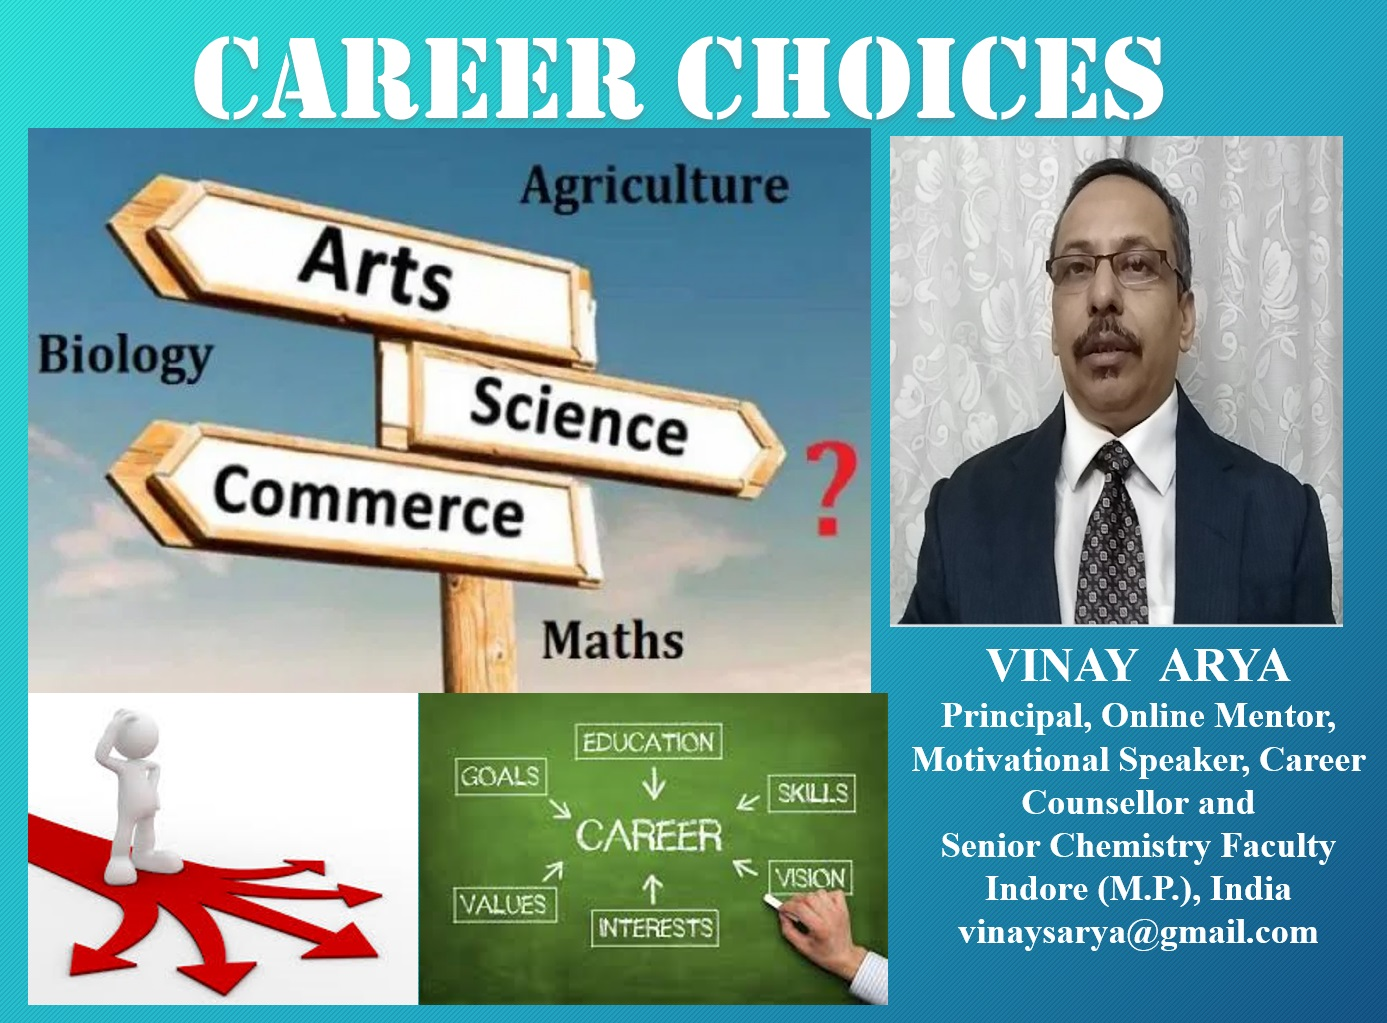 Career Choices for Subject selection